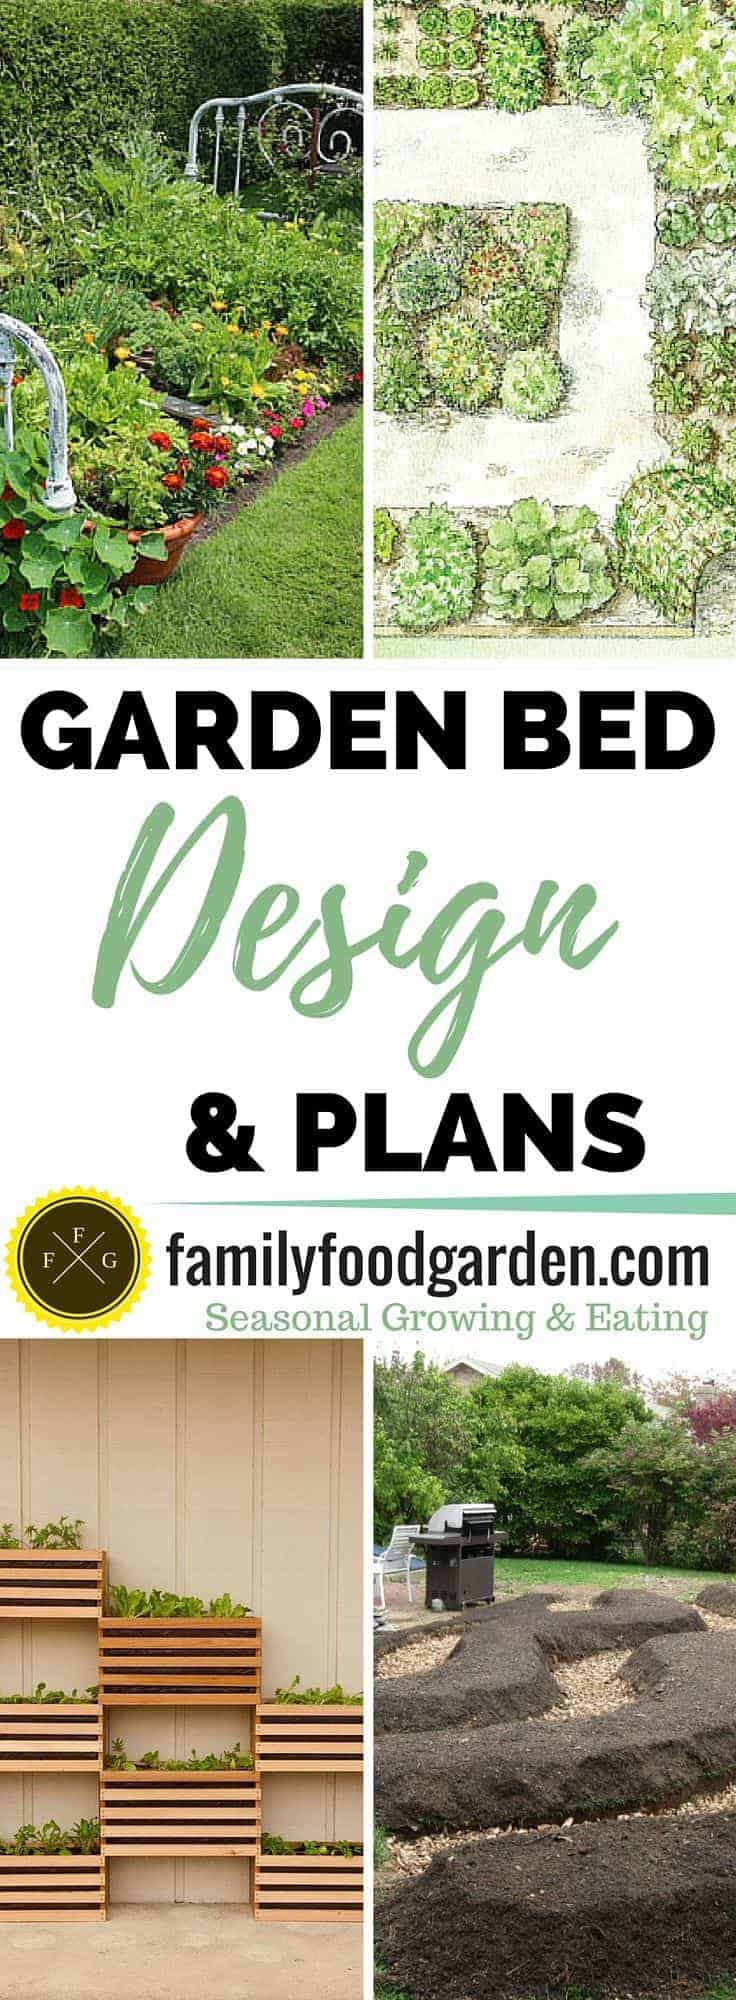 Inspiring vegetable garden bed designs plans for Garden design instagram